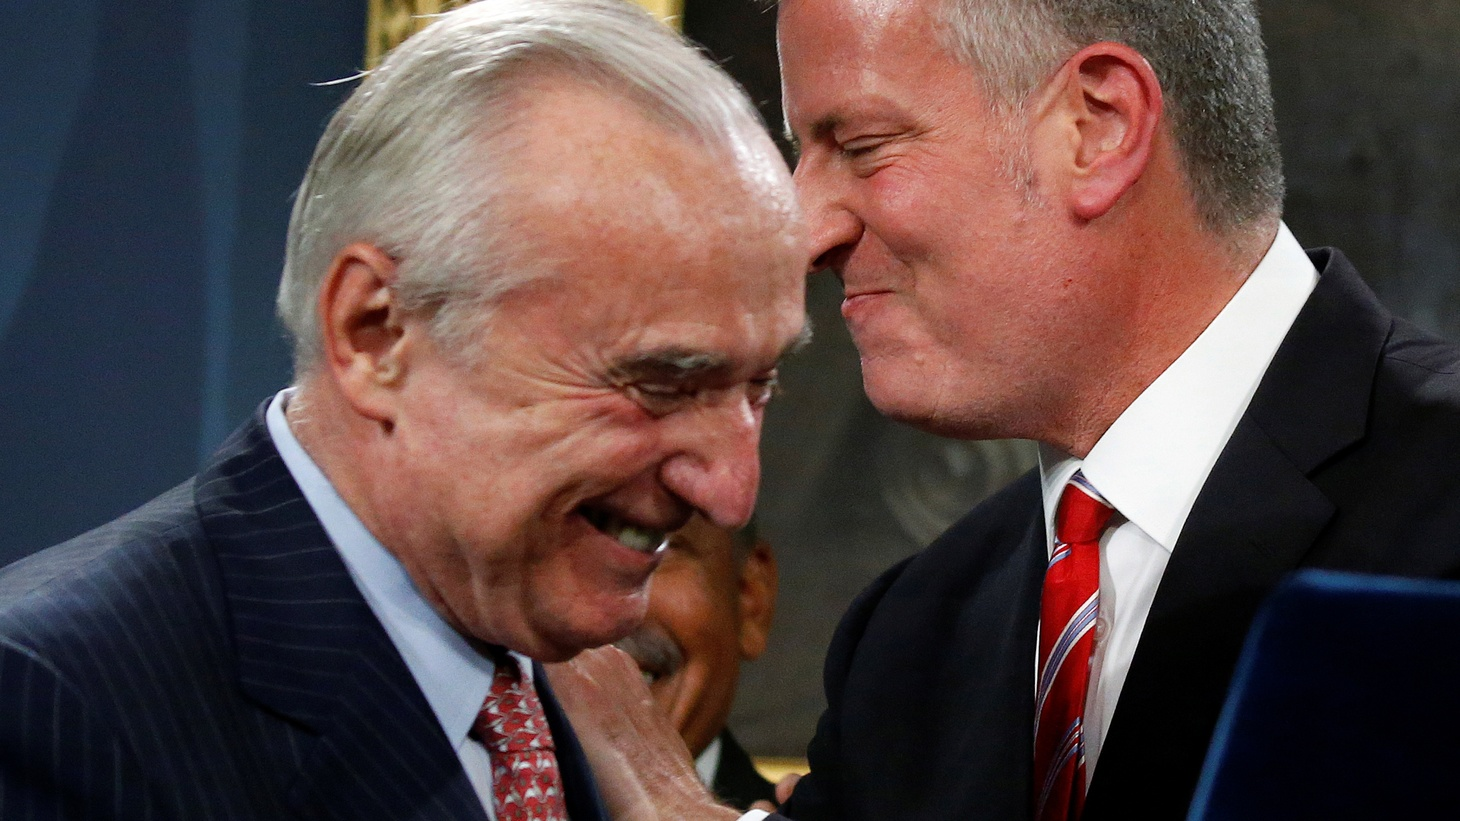 Former LA Police Chief Bill Bratton announced he will retire as NYPD Commissioner after his nearly five-decade policing career. How did he change policing in LA?